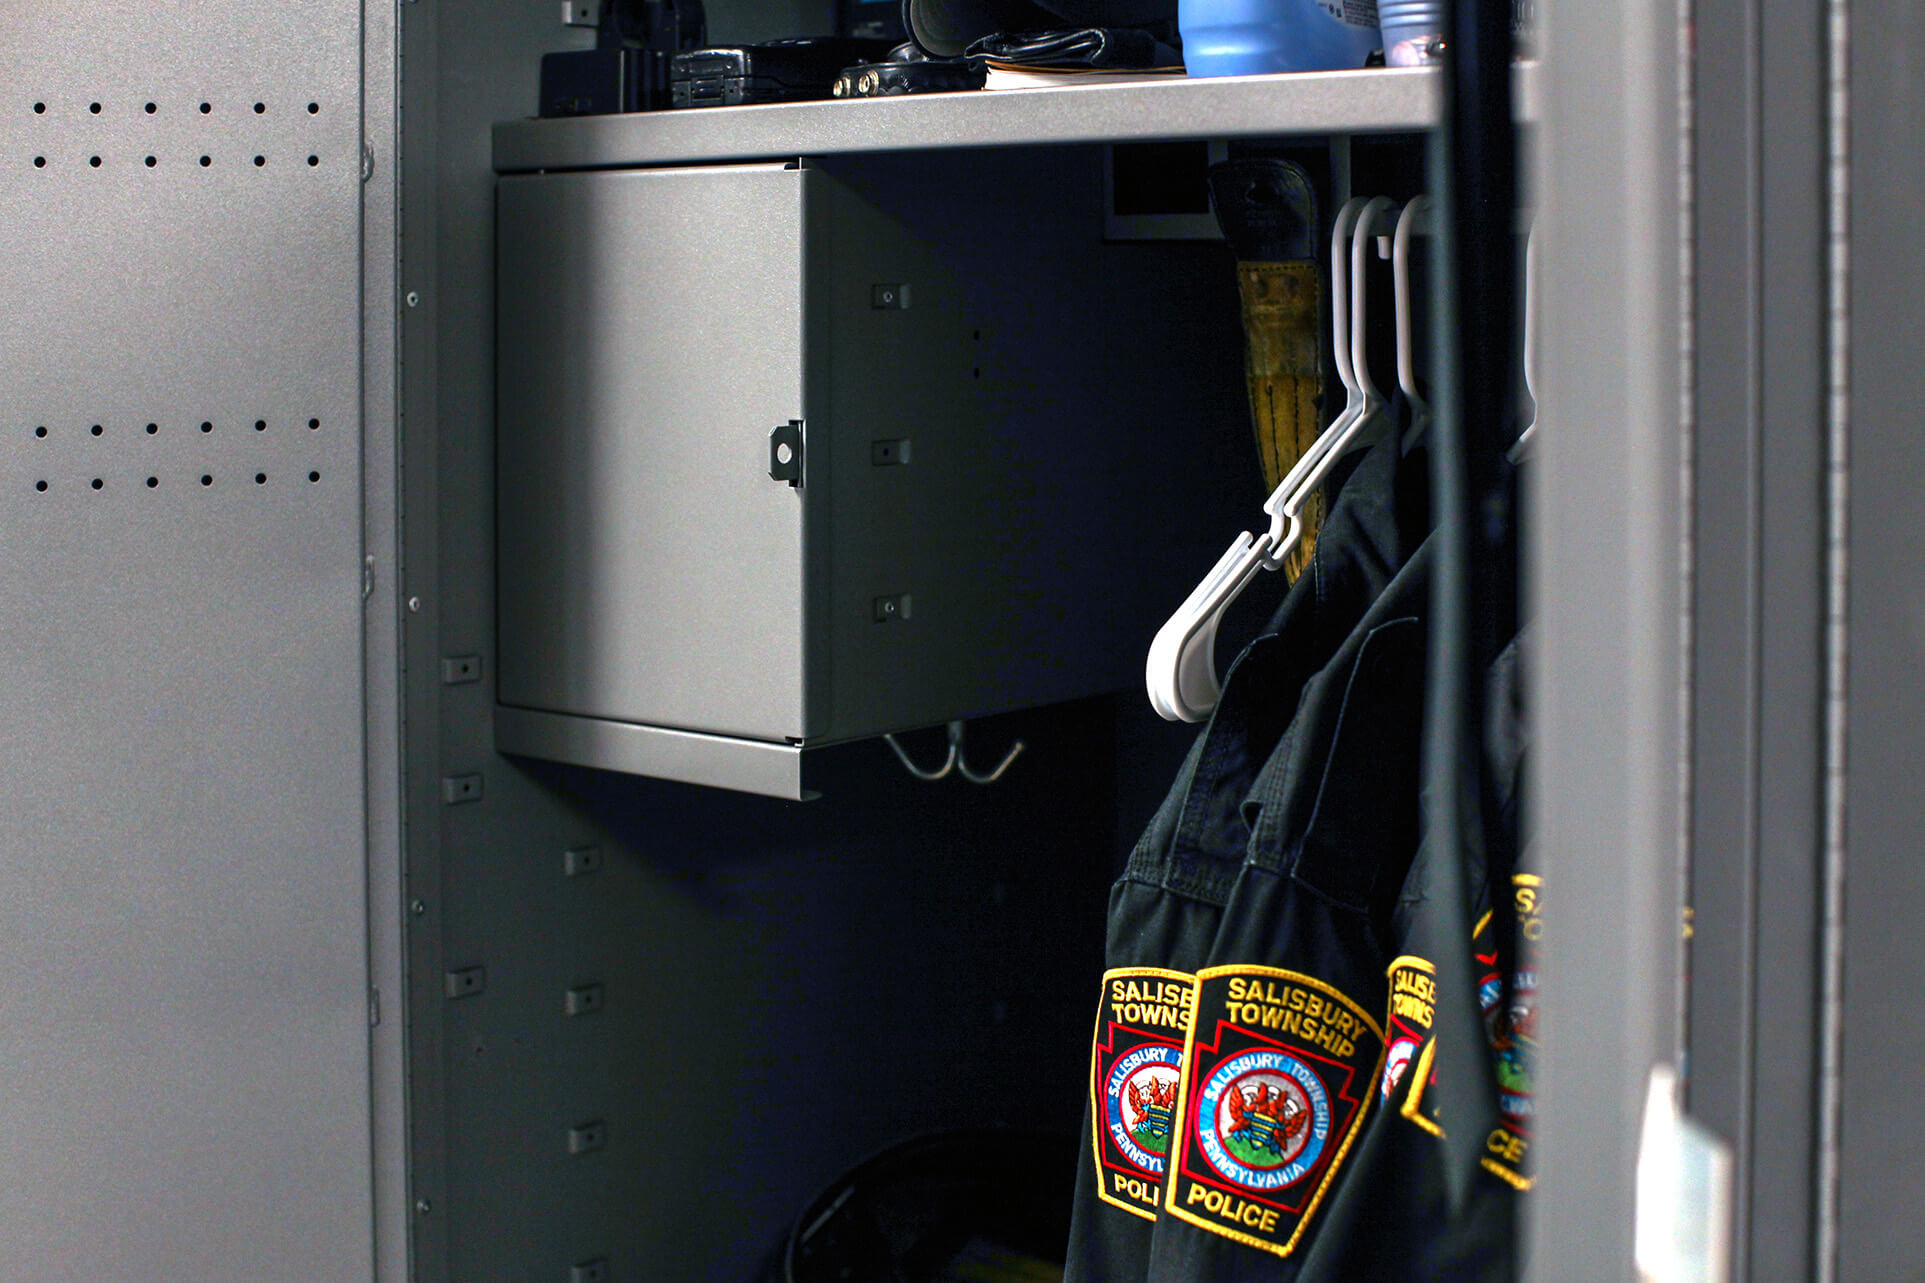 Flexible storage options inside personal storage lockers at Salisbury Township Police Department